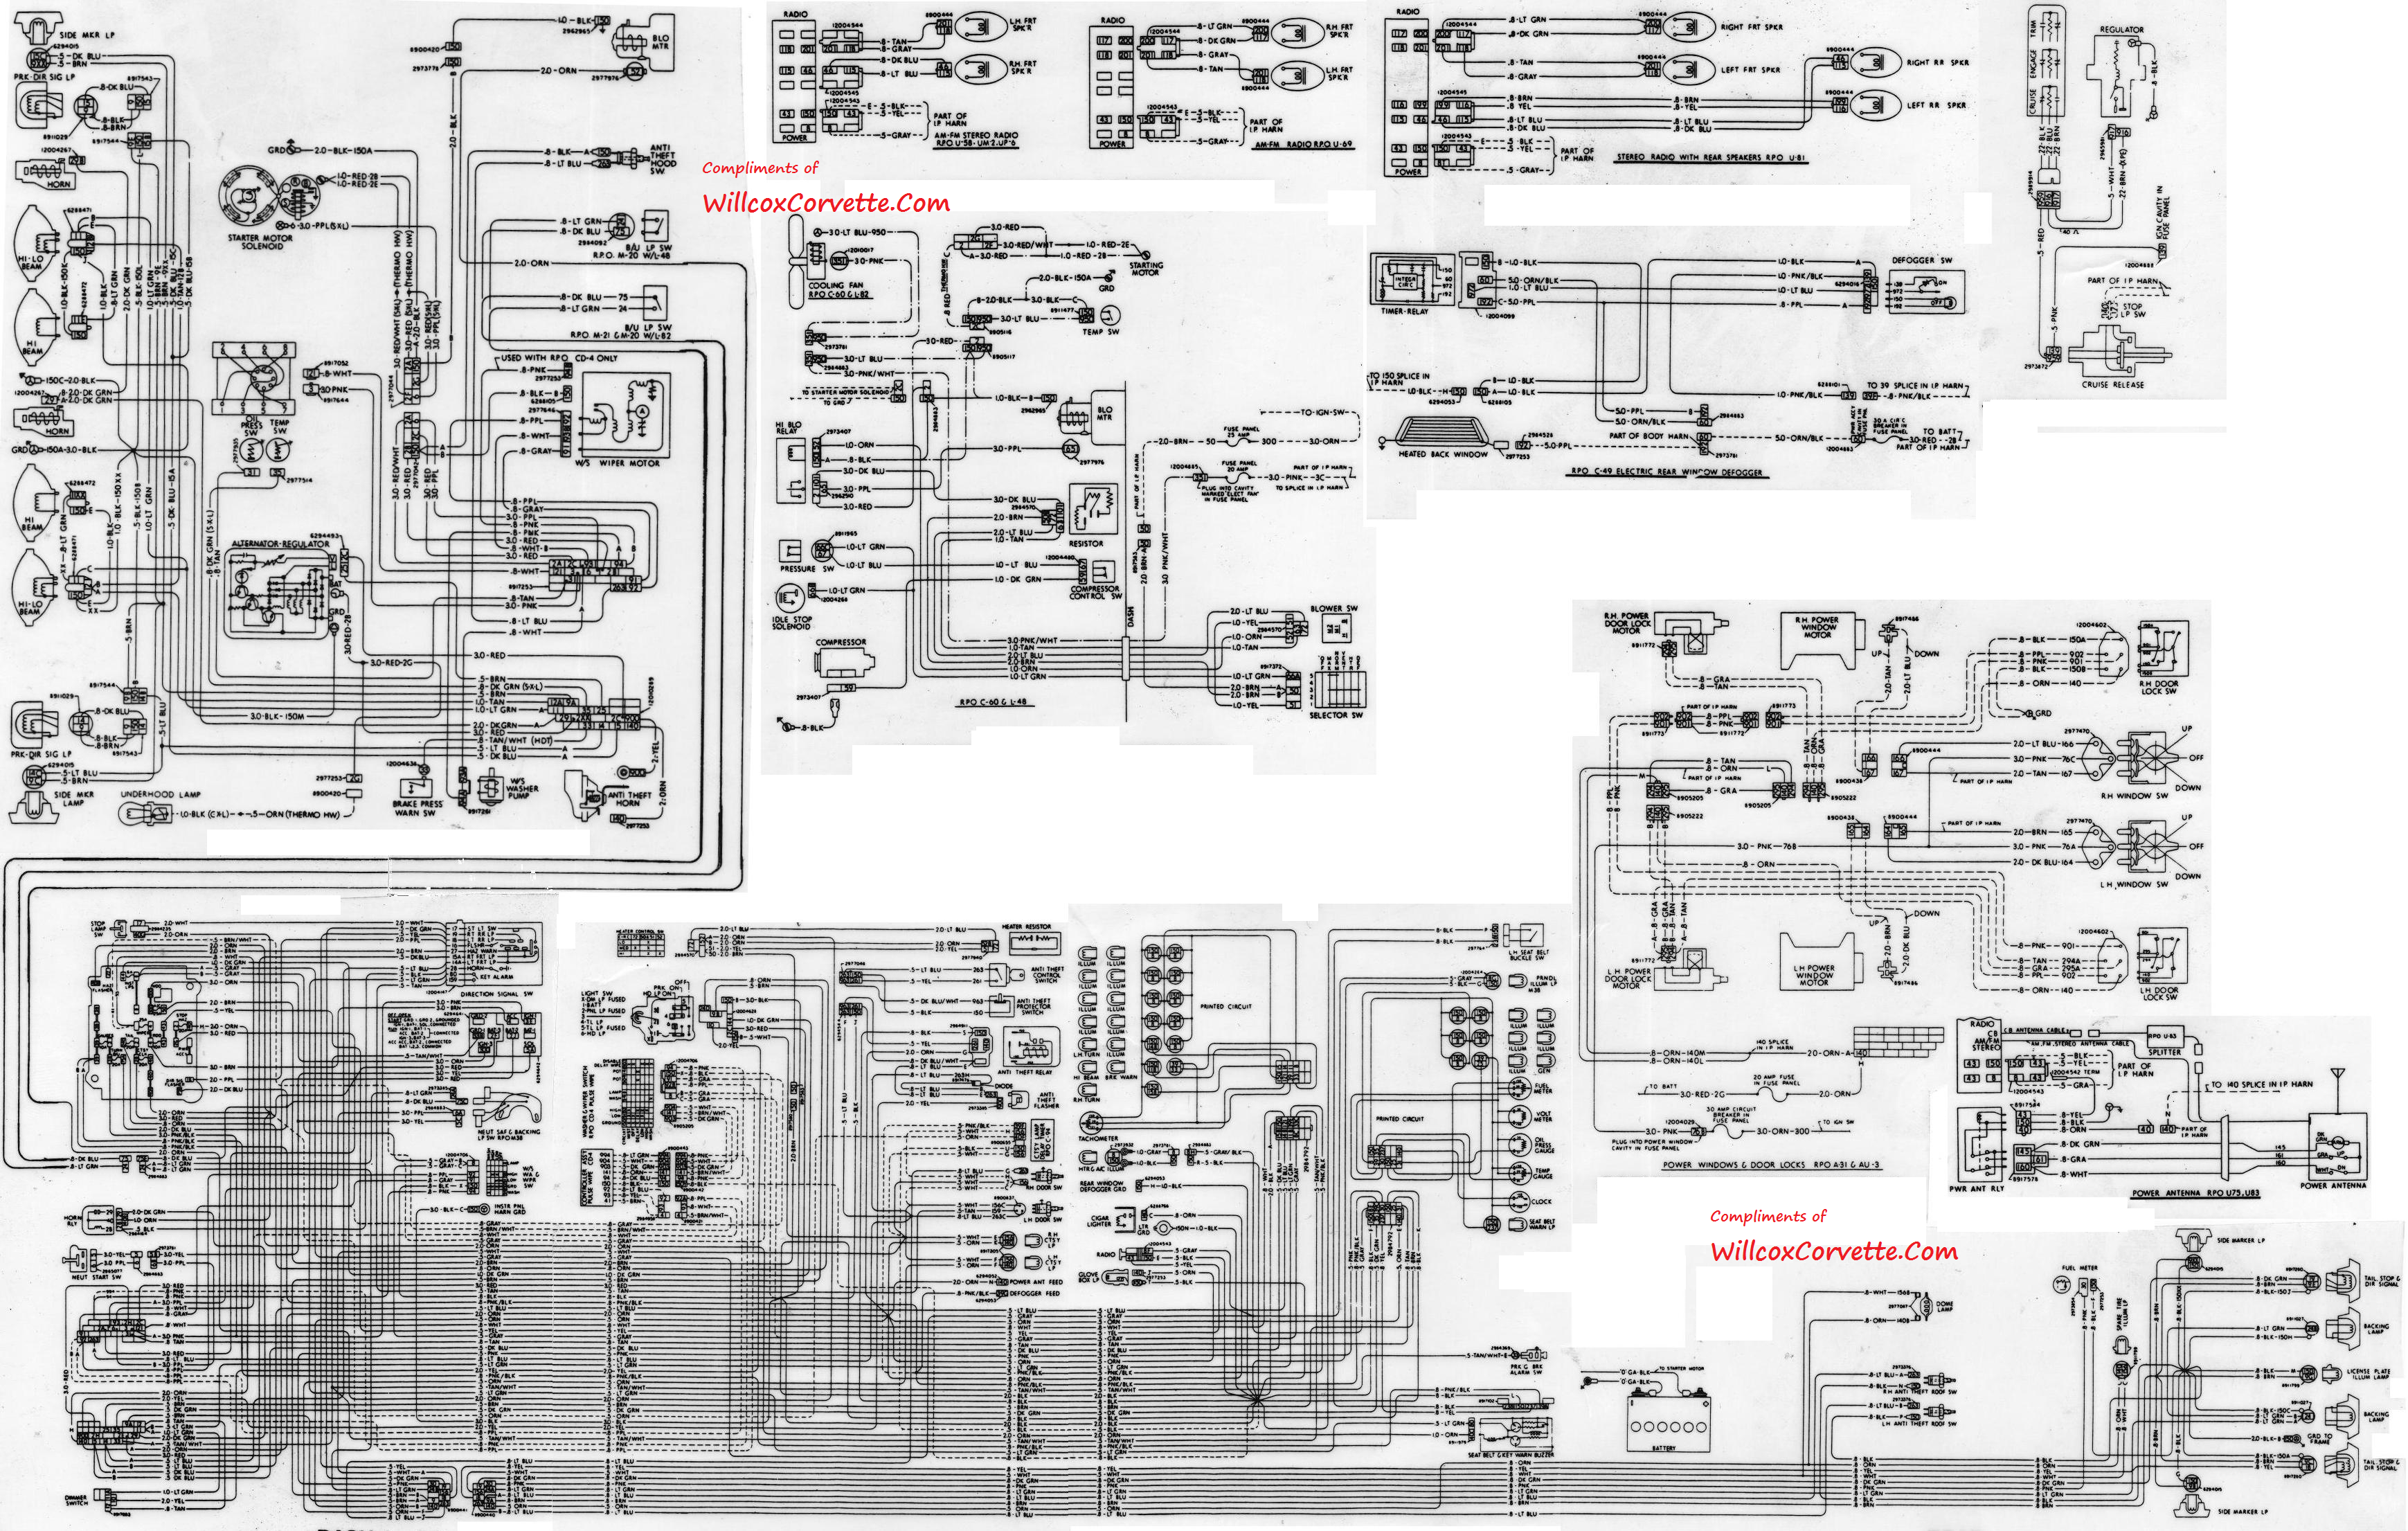 1979 wiring diagram corvetteforum chevrolet corvette forum on 1970 Corvette Wiring Diagram for they work great this way repairs willcoxcorvette com 1 cer schematic if you click on the one below twice it'll blow up full screen that's at 1990 Corvette Fuse Diagram